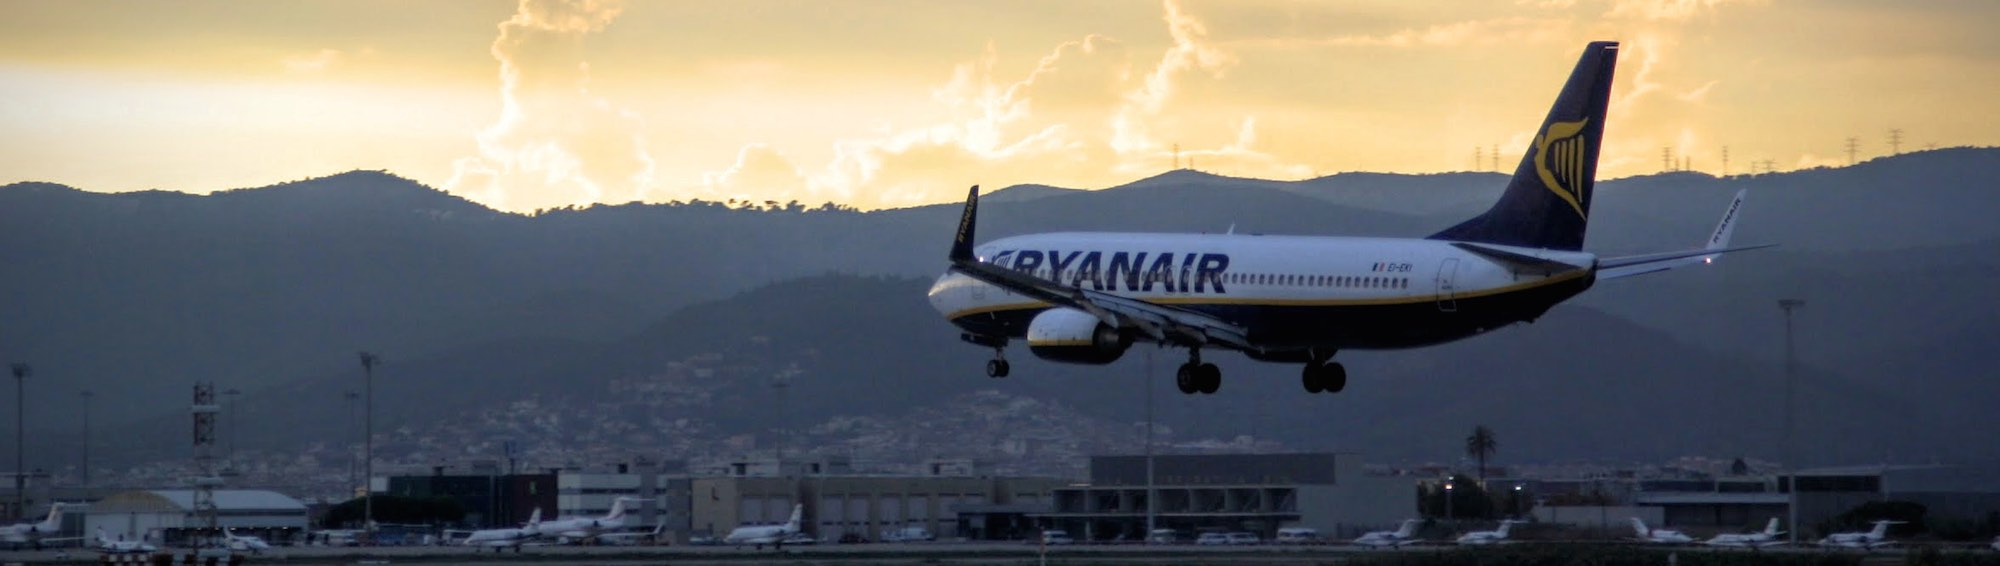 Best time to book flights for Malta (MLA) to Treviso (TSF) flights with Ryanair at AirHint